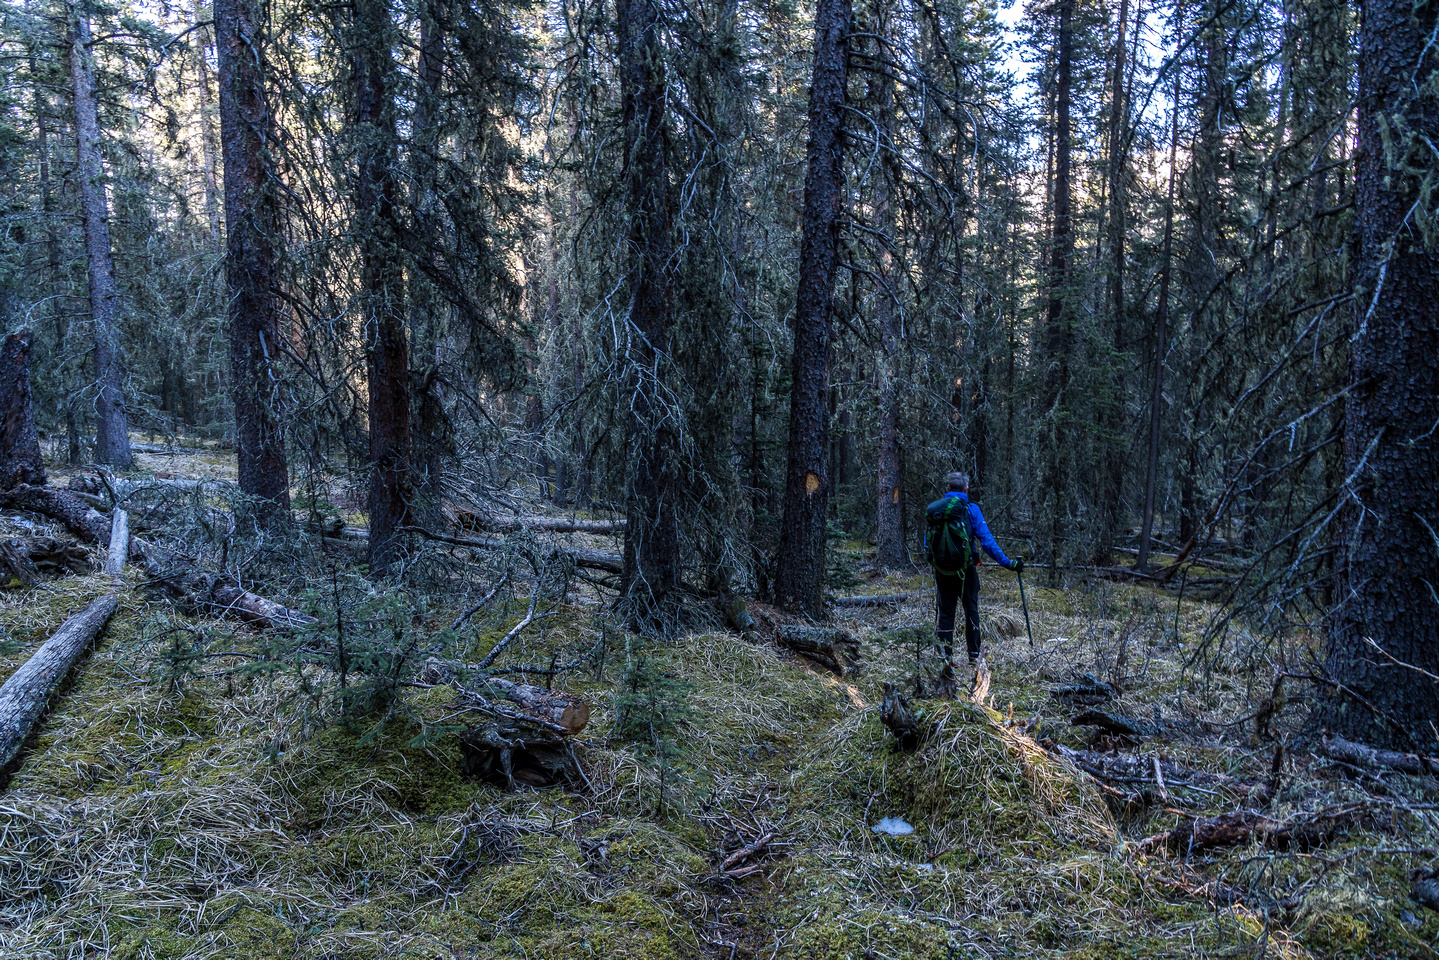 On a faint trail in light forest.